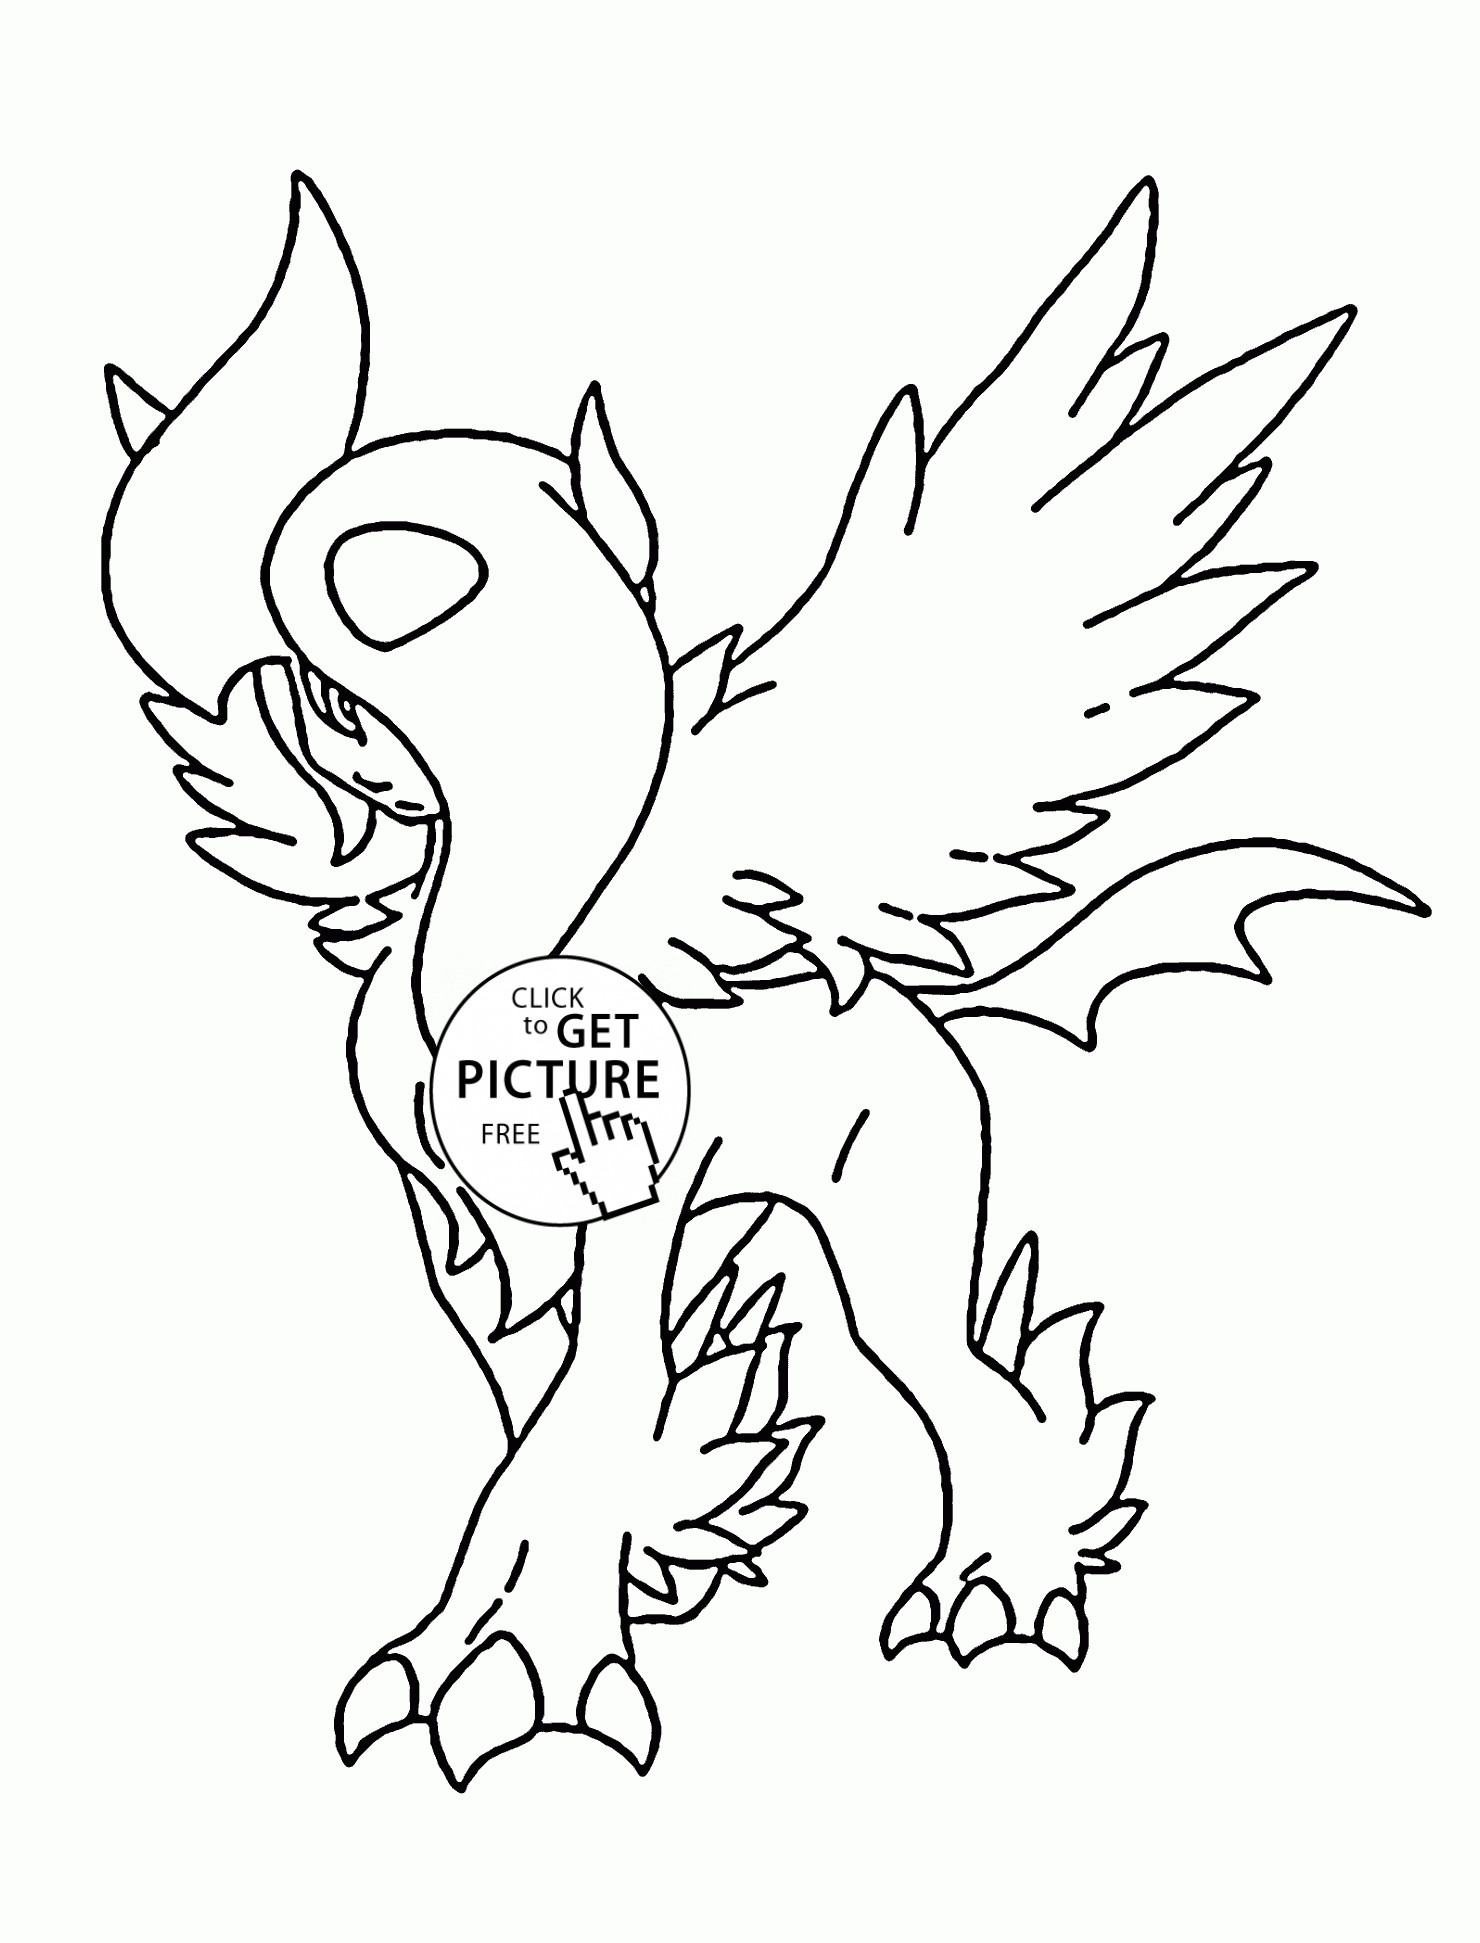 pokemon coloring pages free Download-All Mega Pokemon Coloring Pages All Pokemon Coloring Pages Fresh Pokemon Card Coloring Pages Elegant 11-r